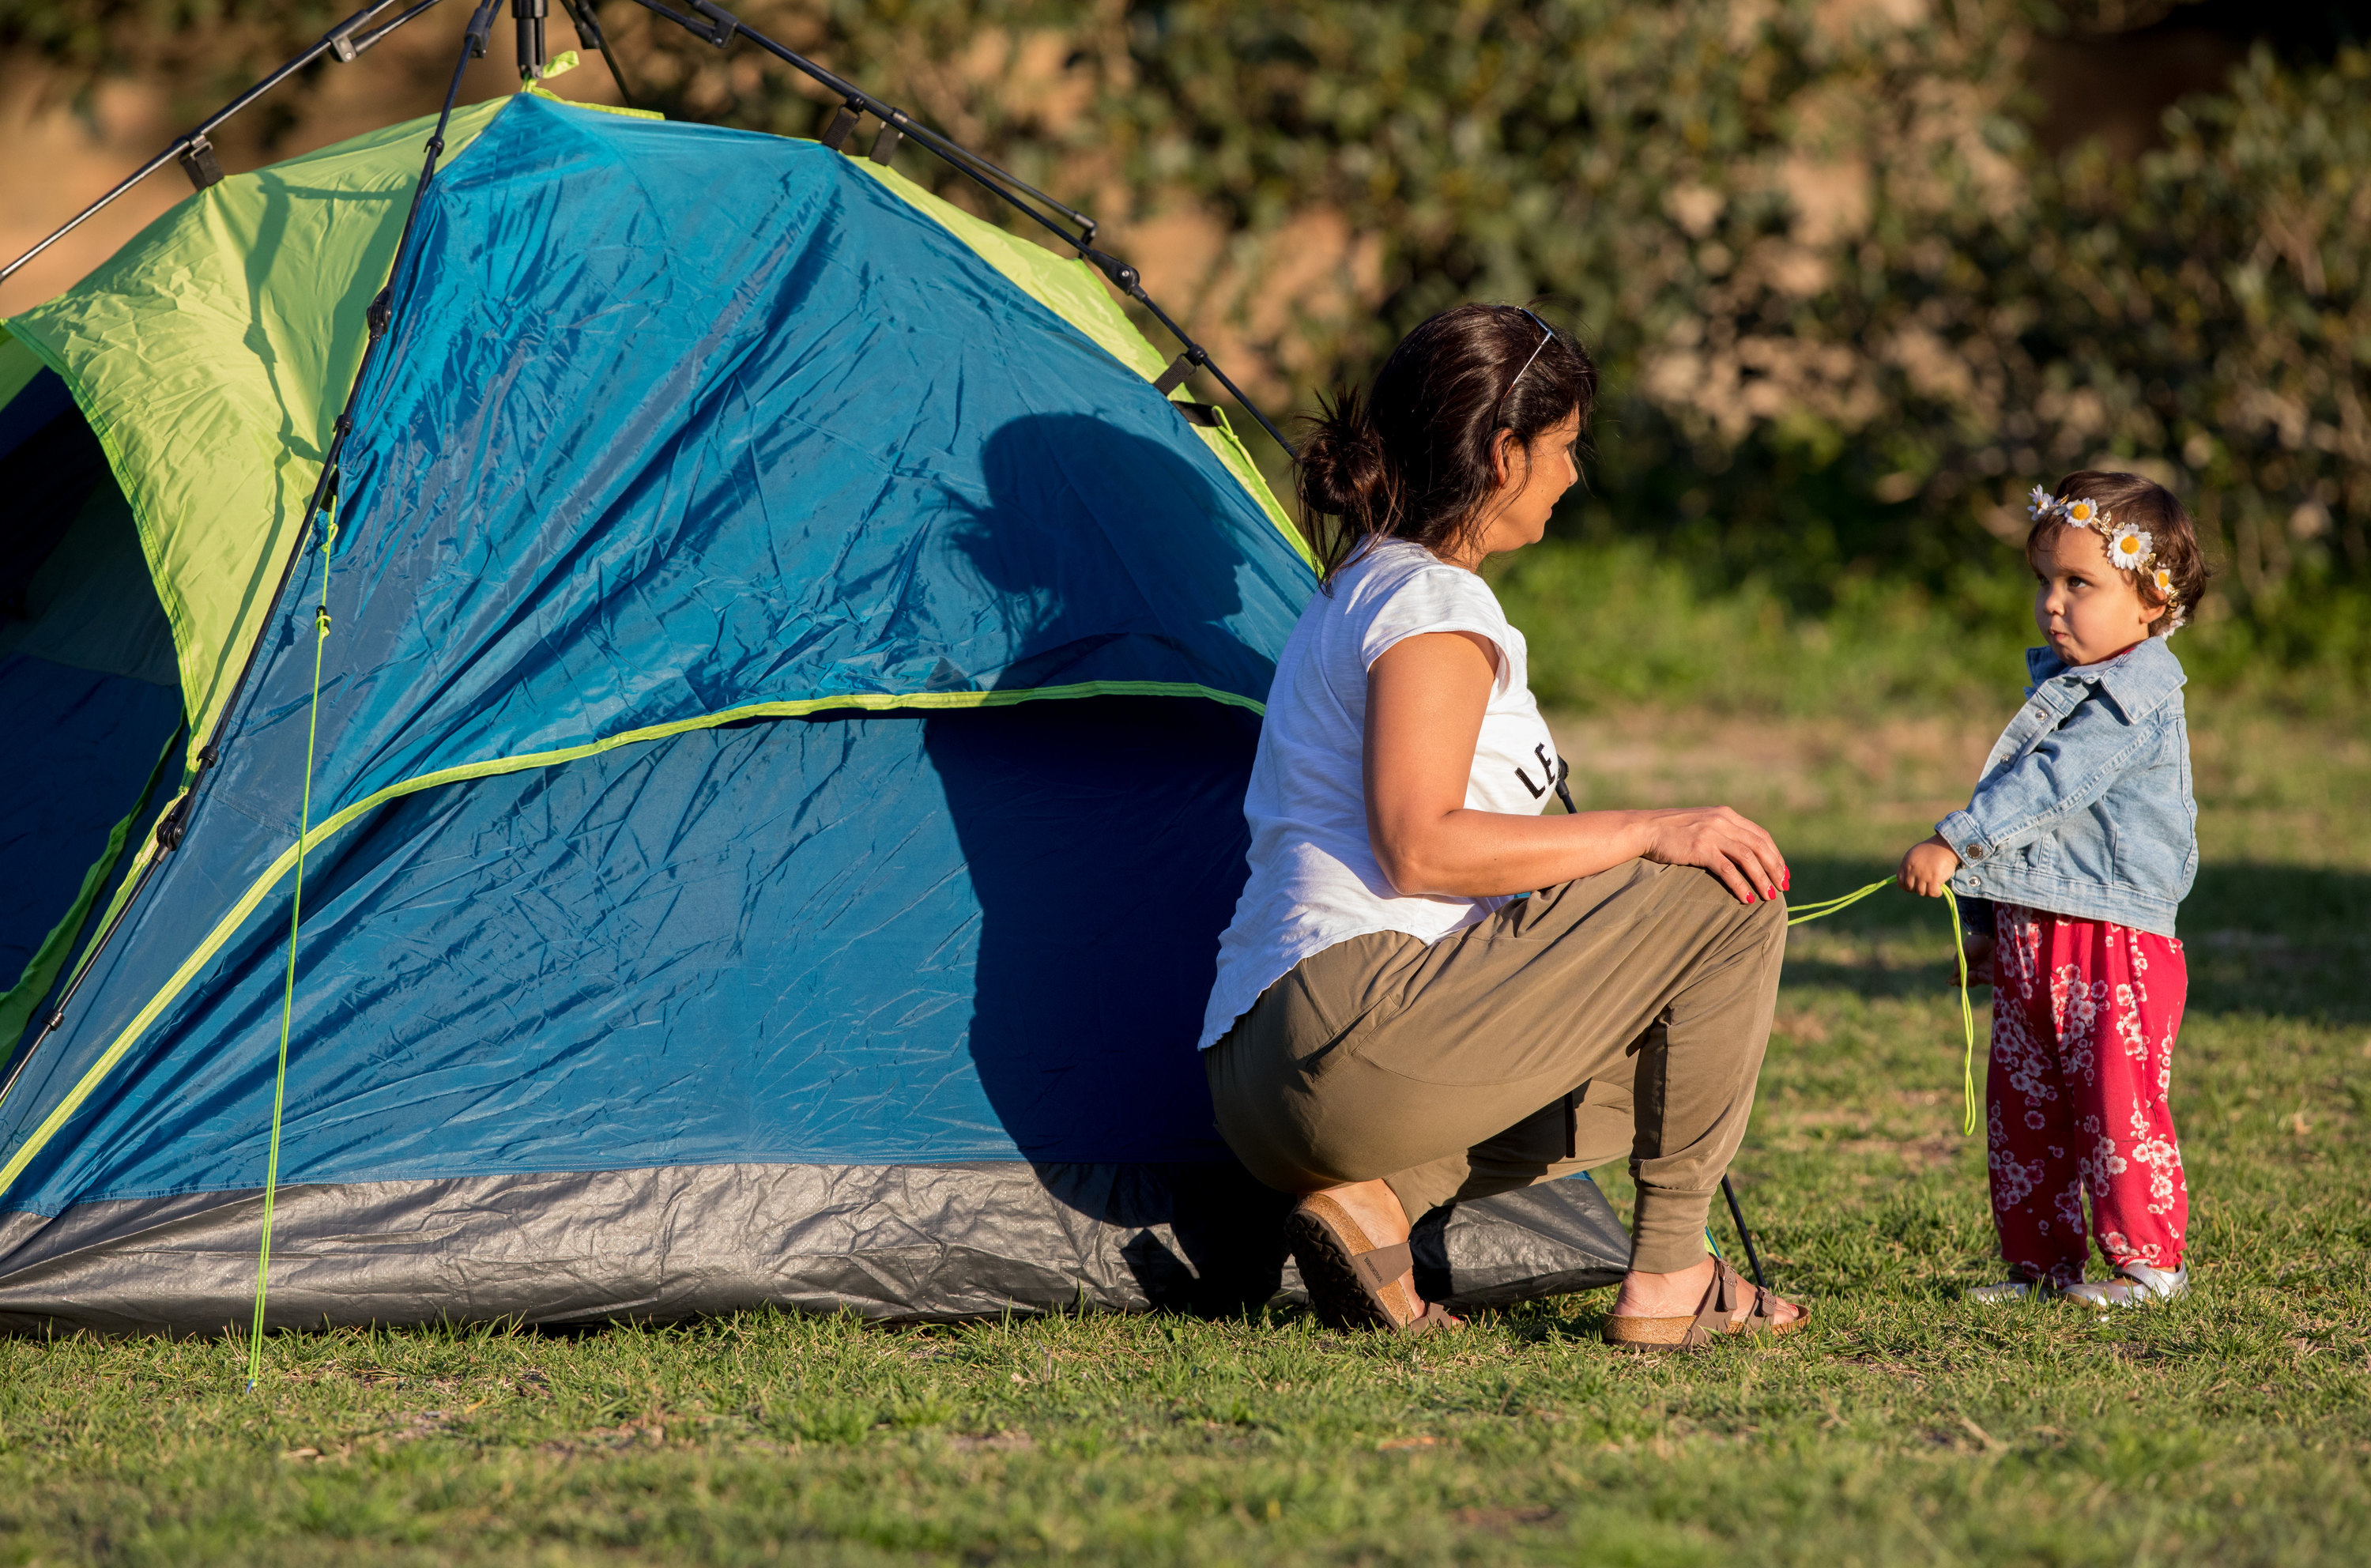 A woman and child sit by a tent.